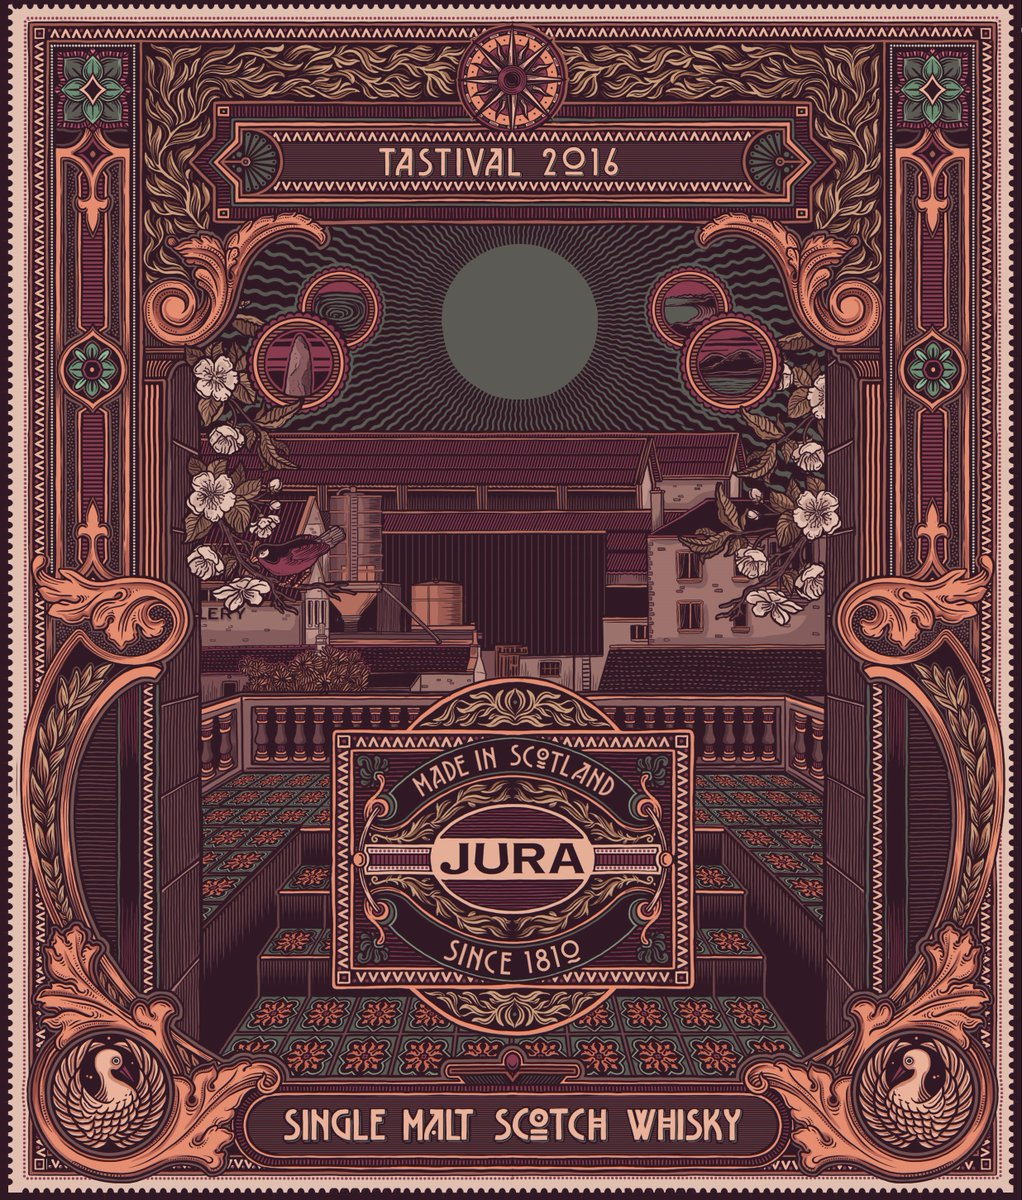 Cast your vote before 18/01/16 for a chance to win special Jura Tastival 2016 prizes https://t.co/izEuQqwBSR https://t.co/npAUp4bzt5